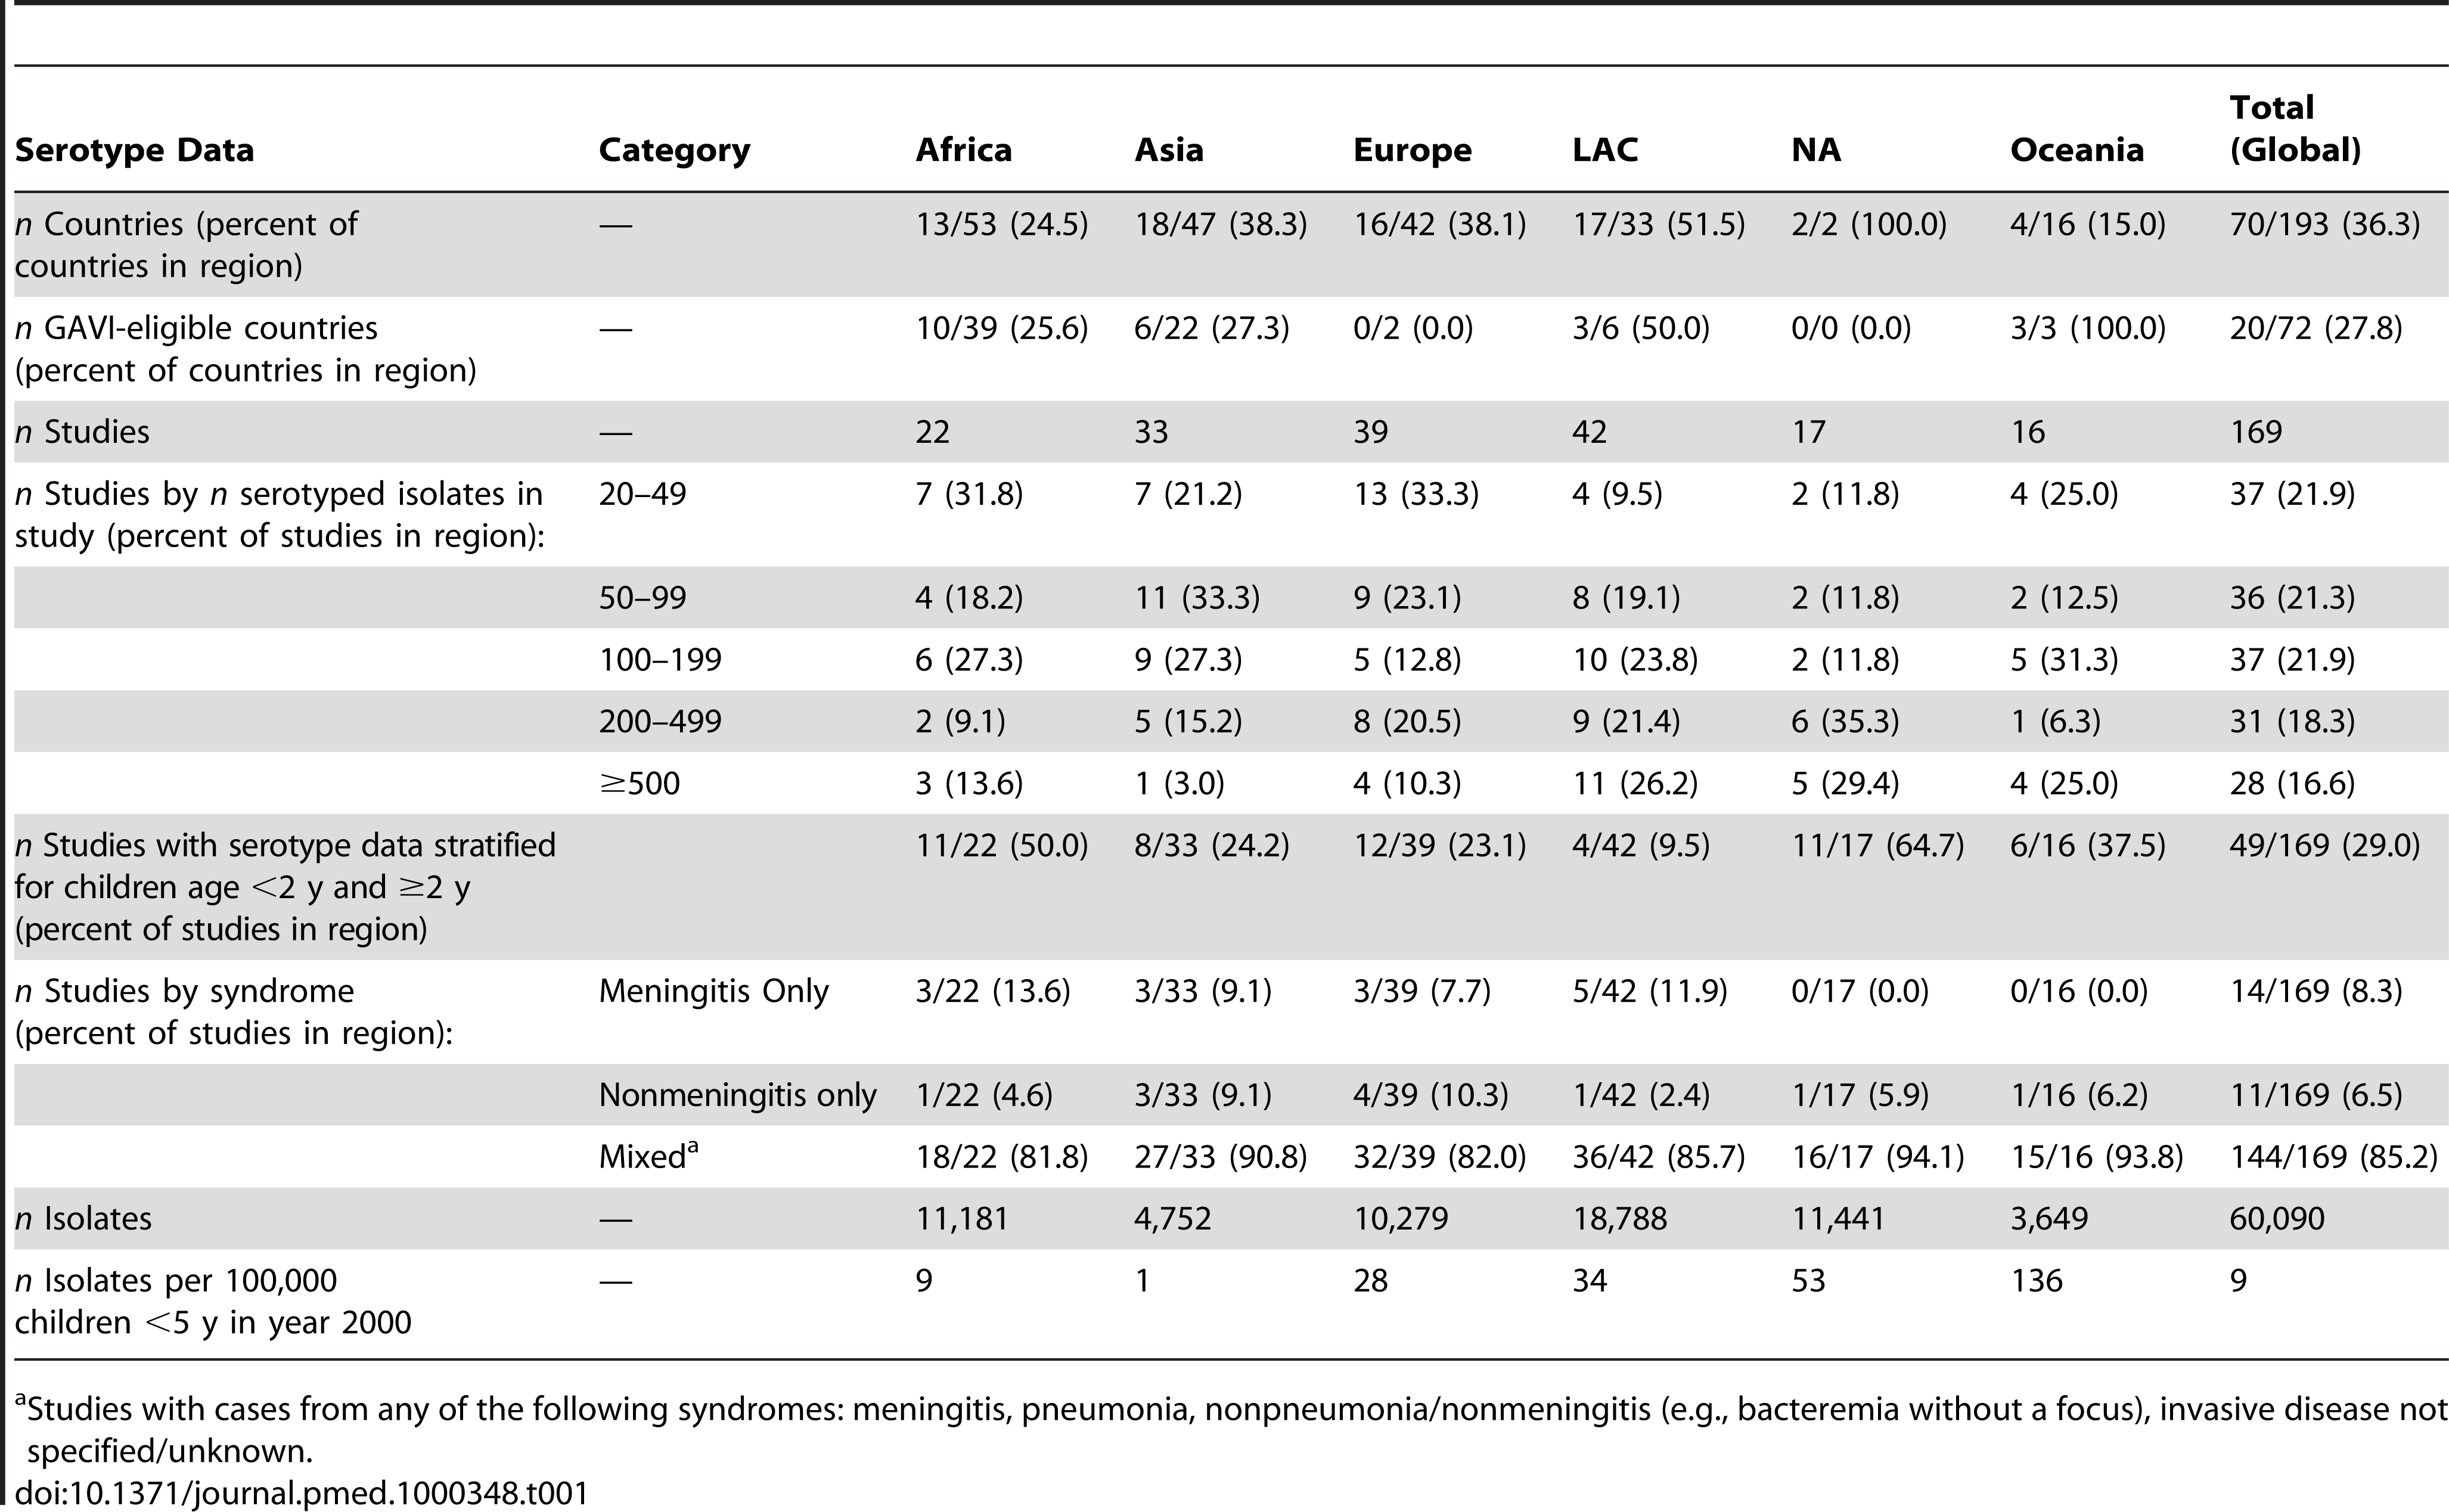 Summary of serotype data available for analysis.